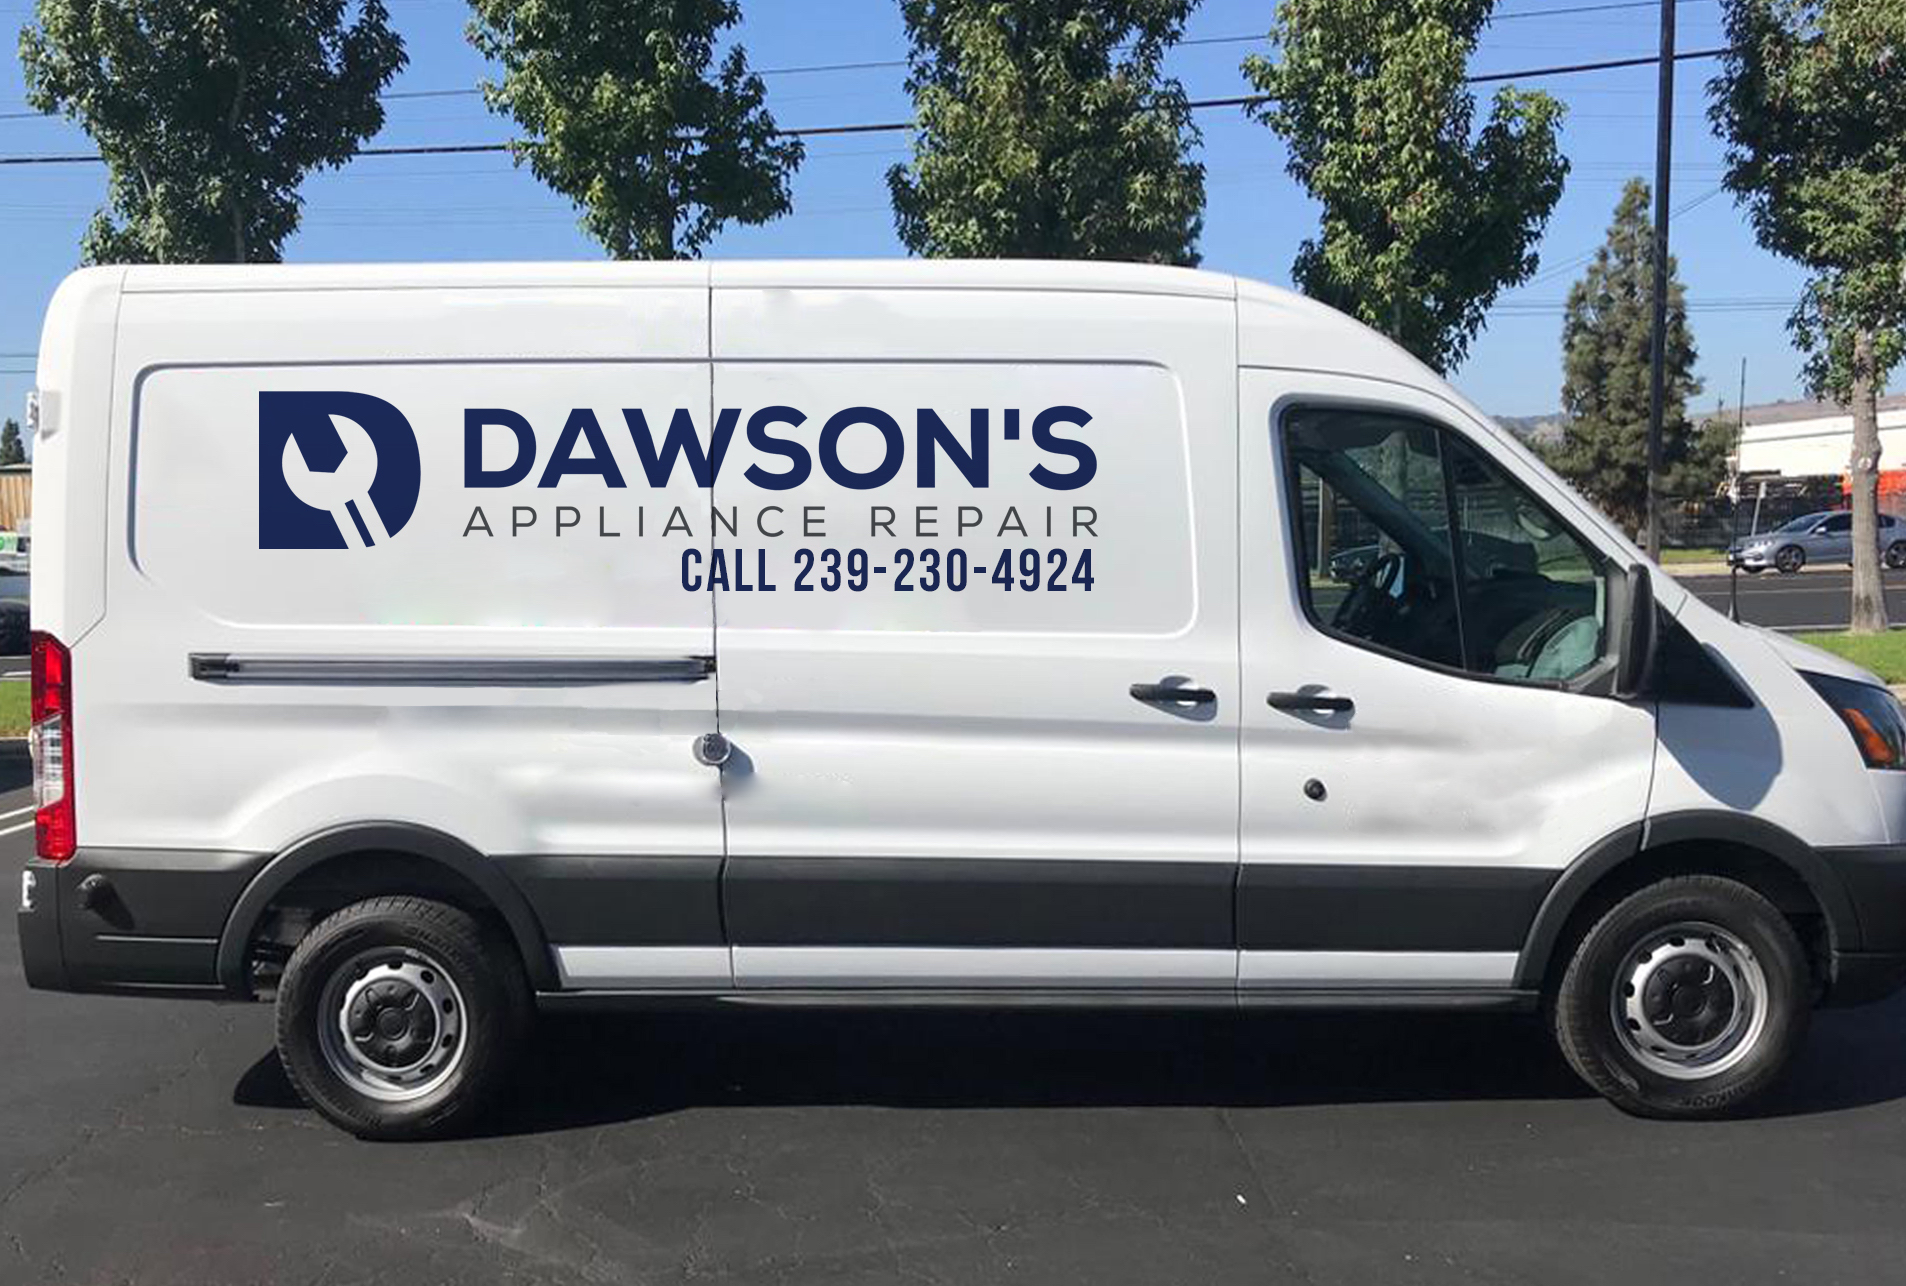 dawson appliance repair in union city